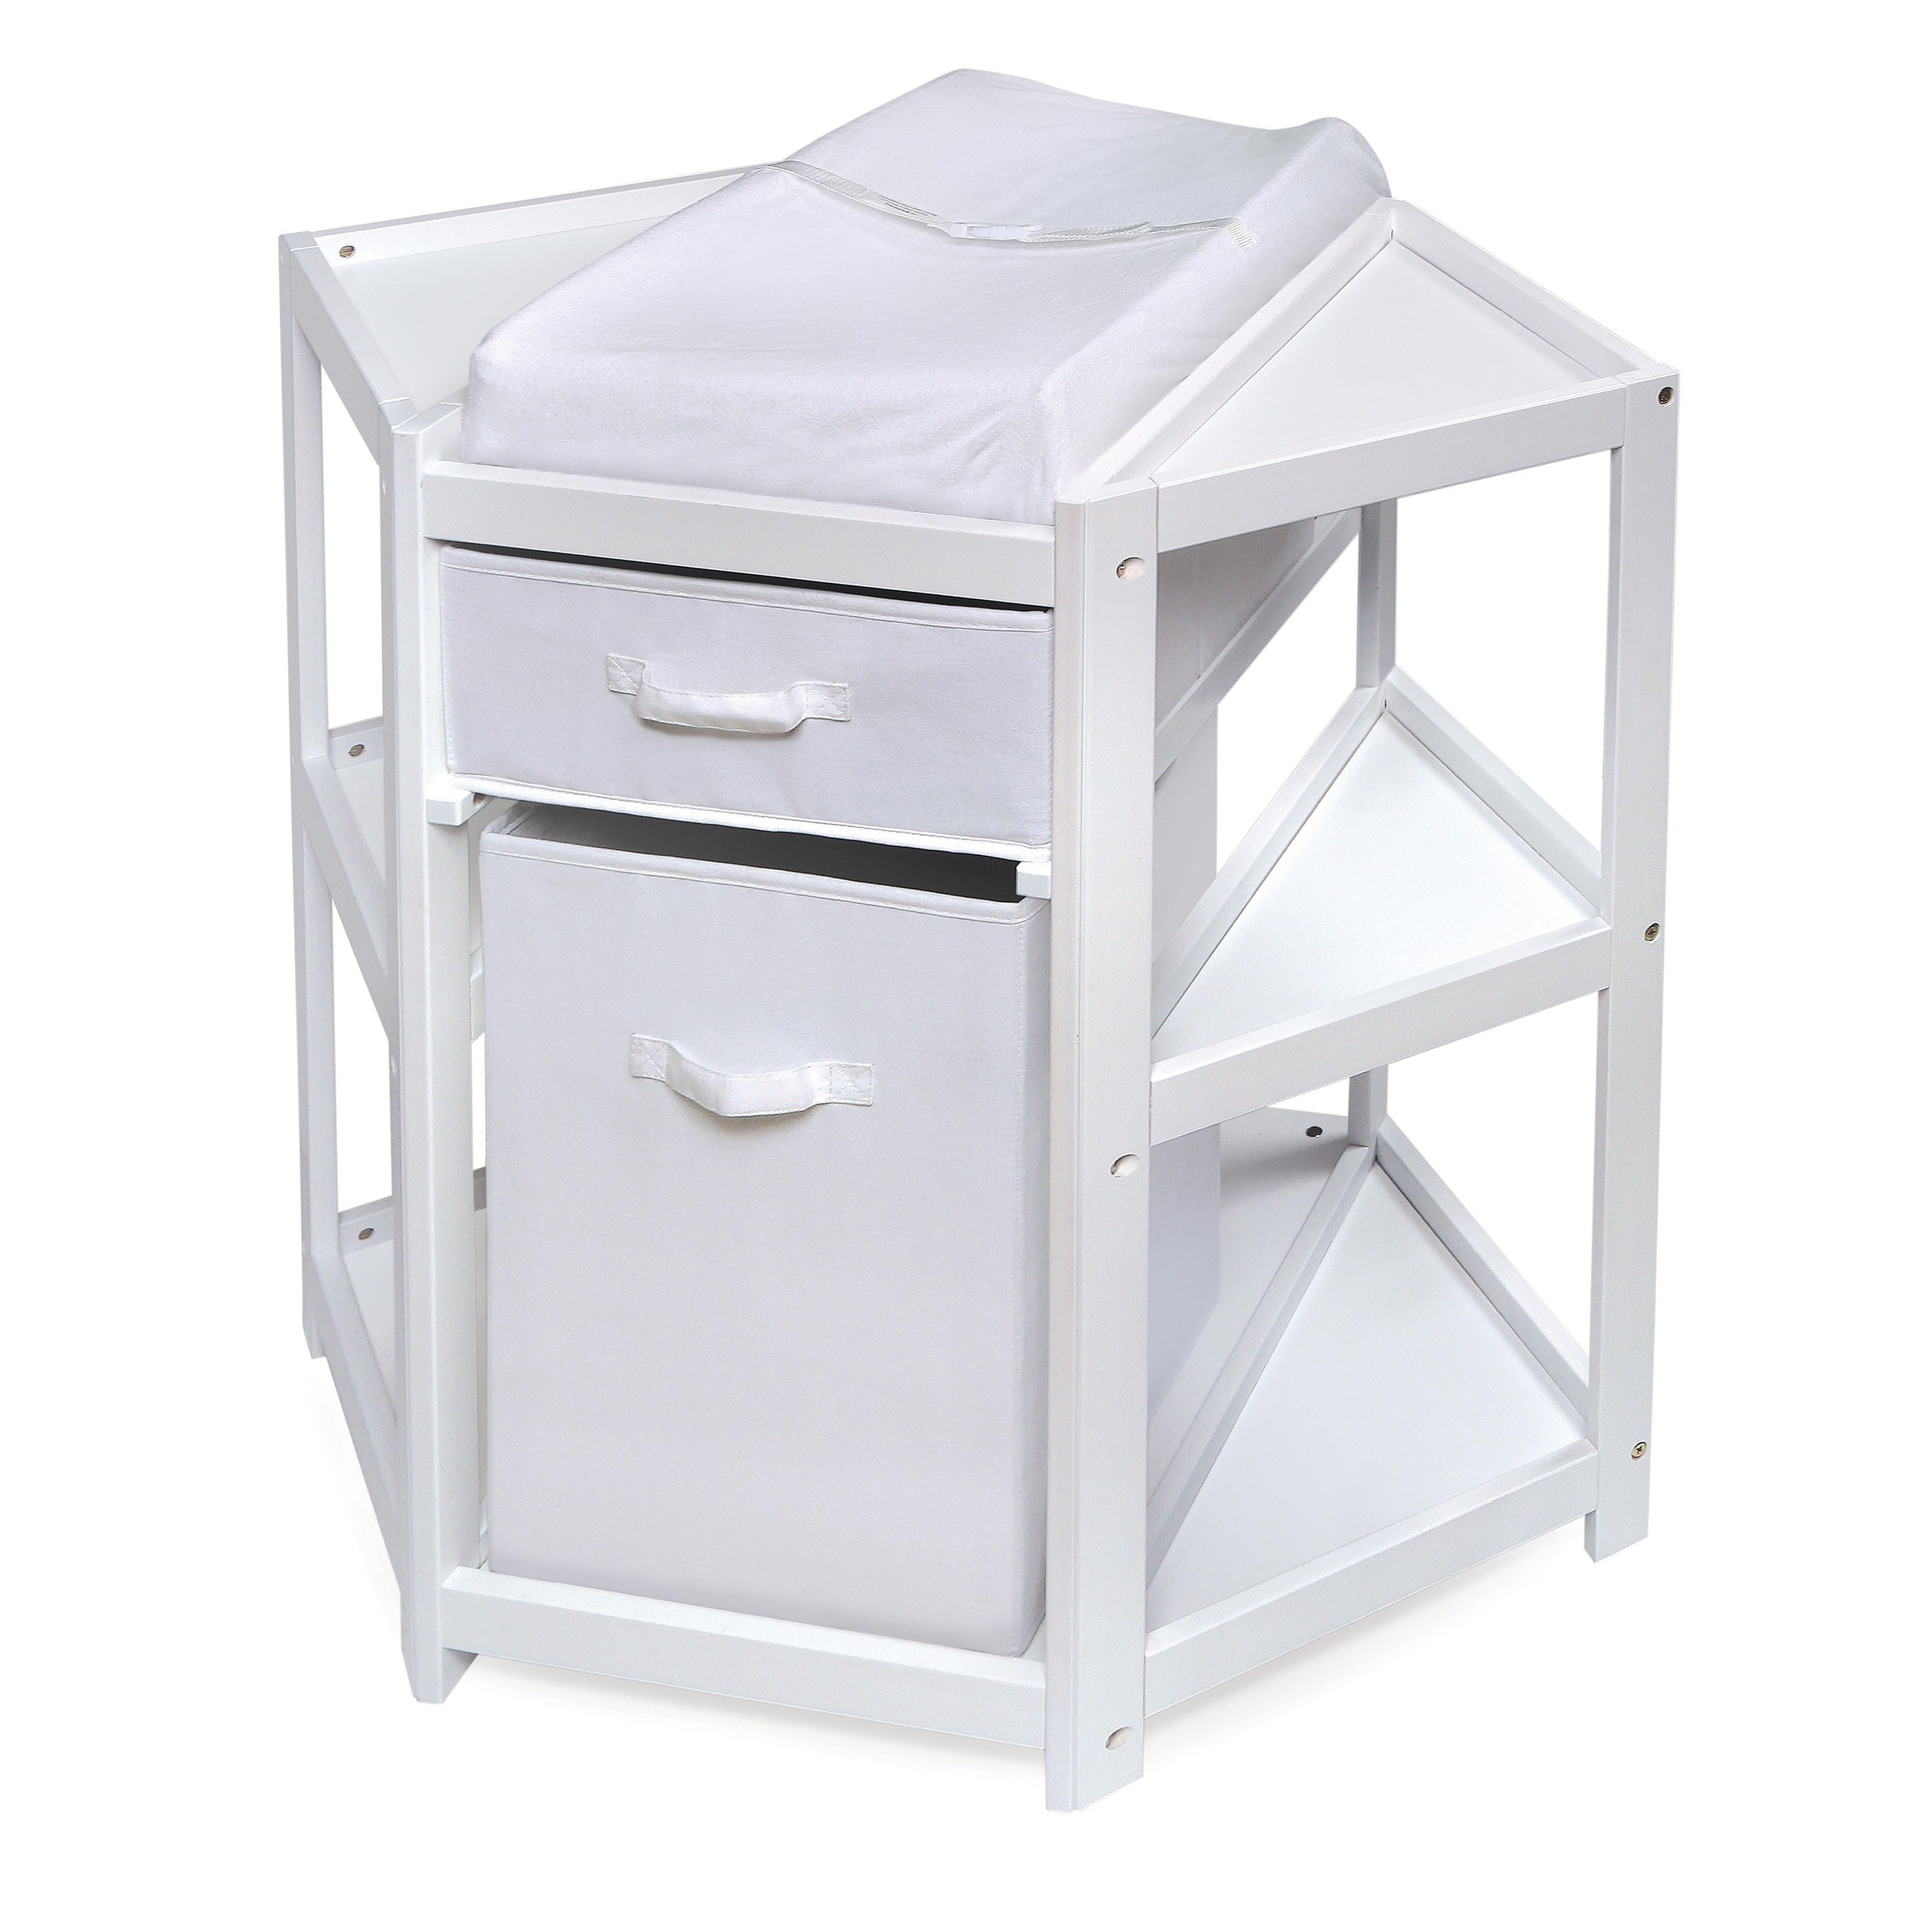 The badger basketus diaper corner changing table allows you to